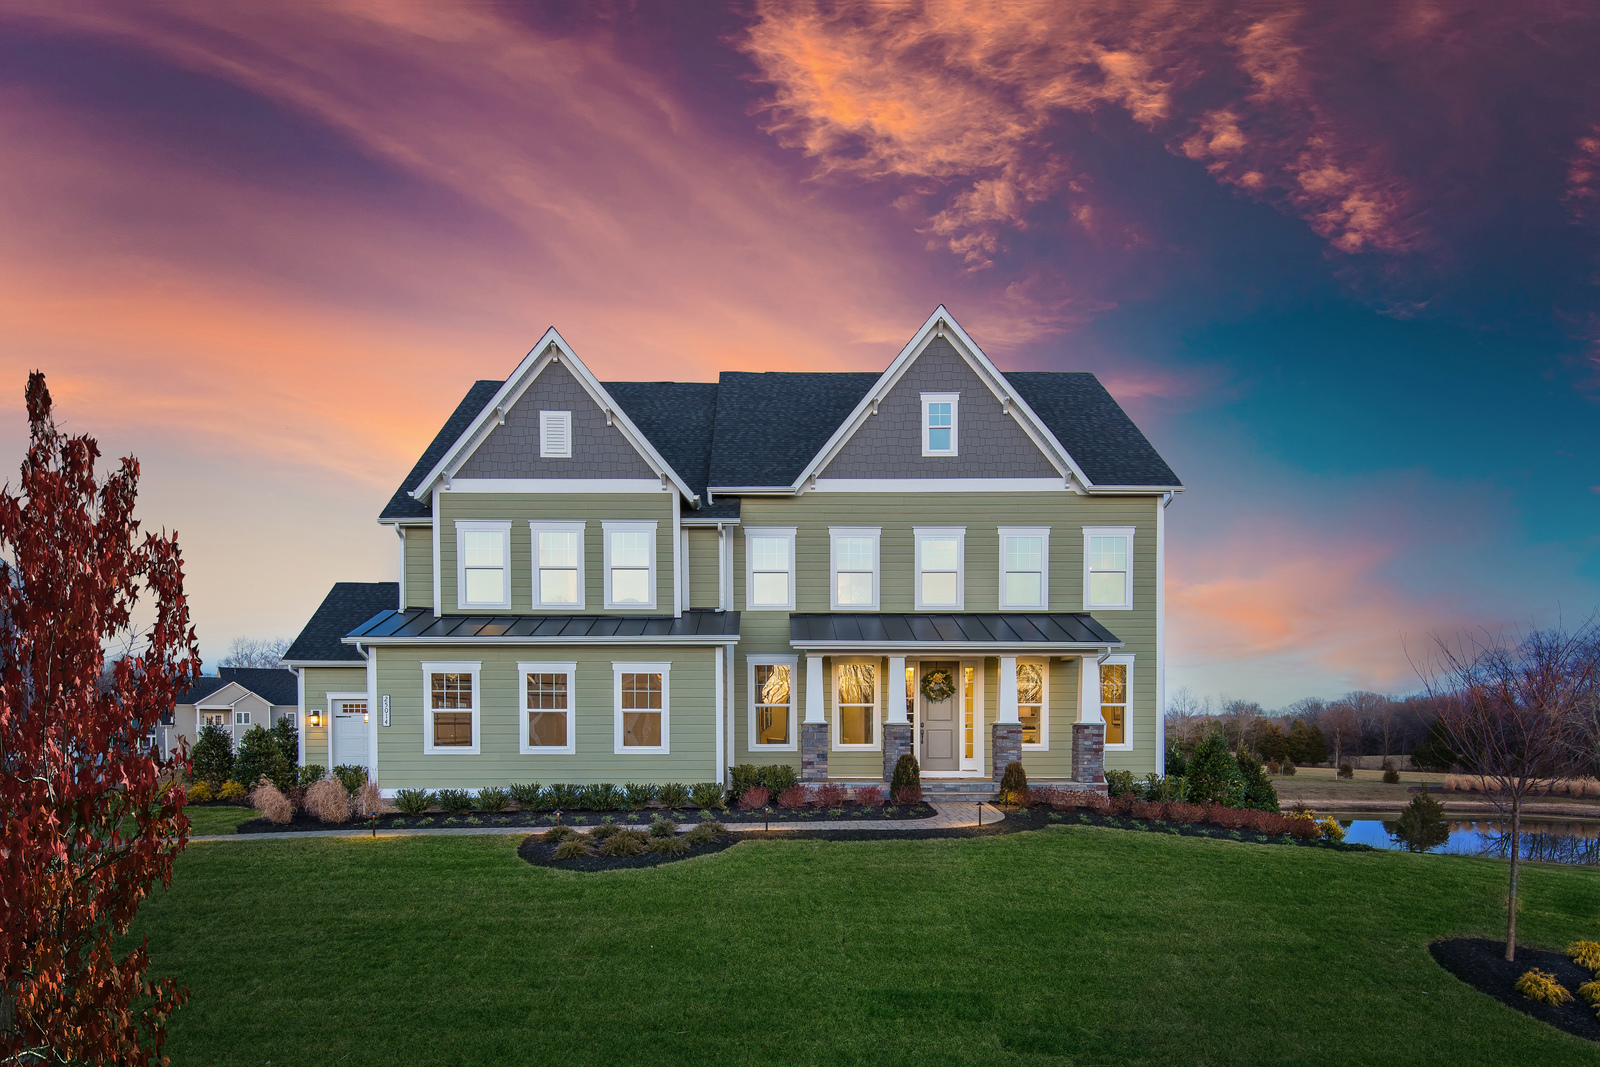 New executive single-family homes in a park-like setting coming soon to West Chester click here to join the priority list today!